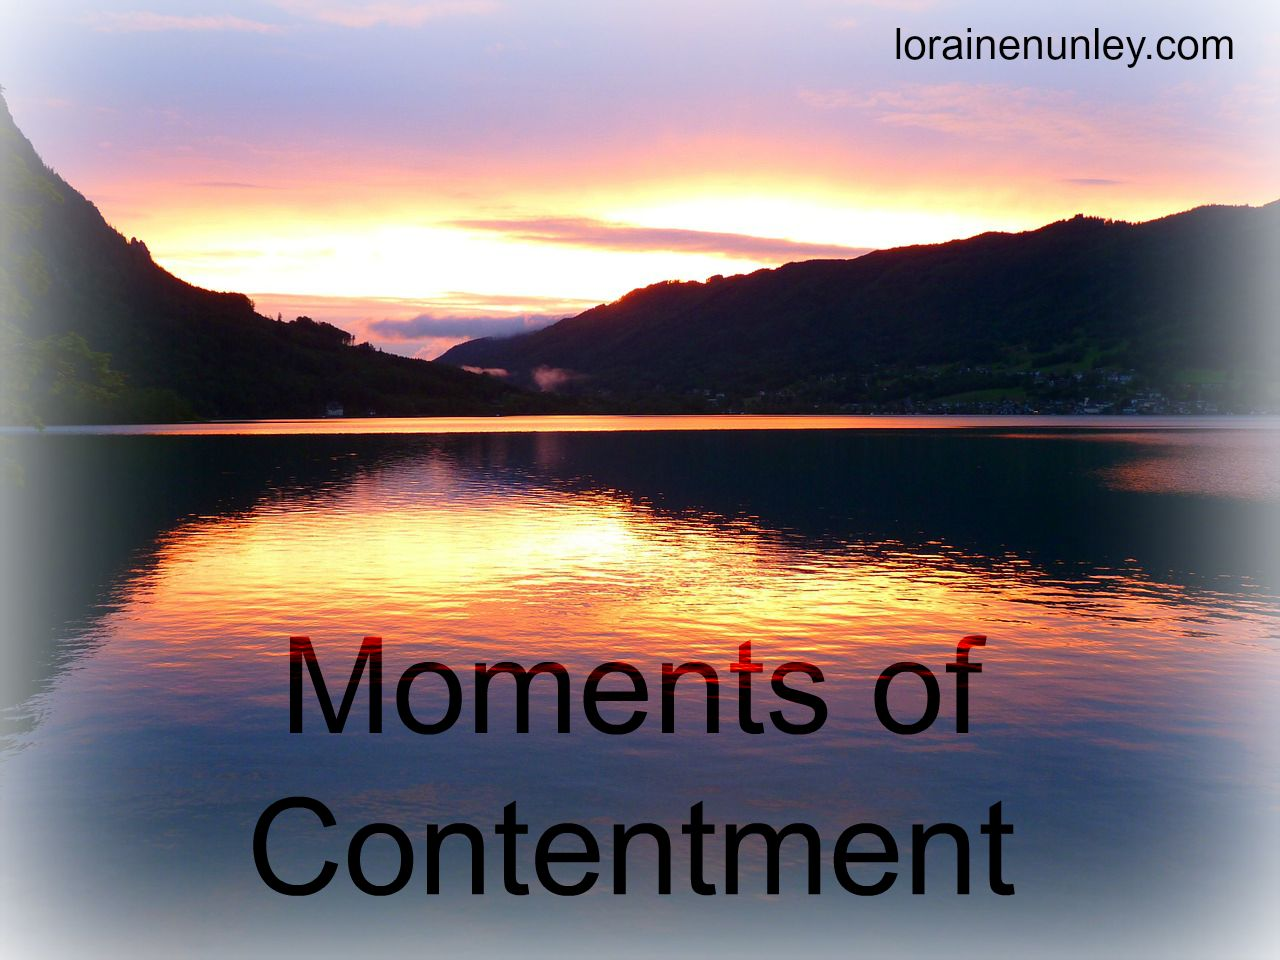 Moments of Contentment